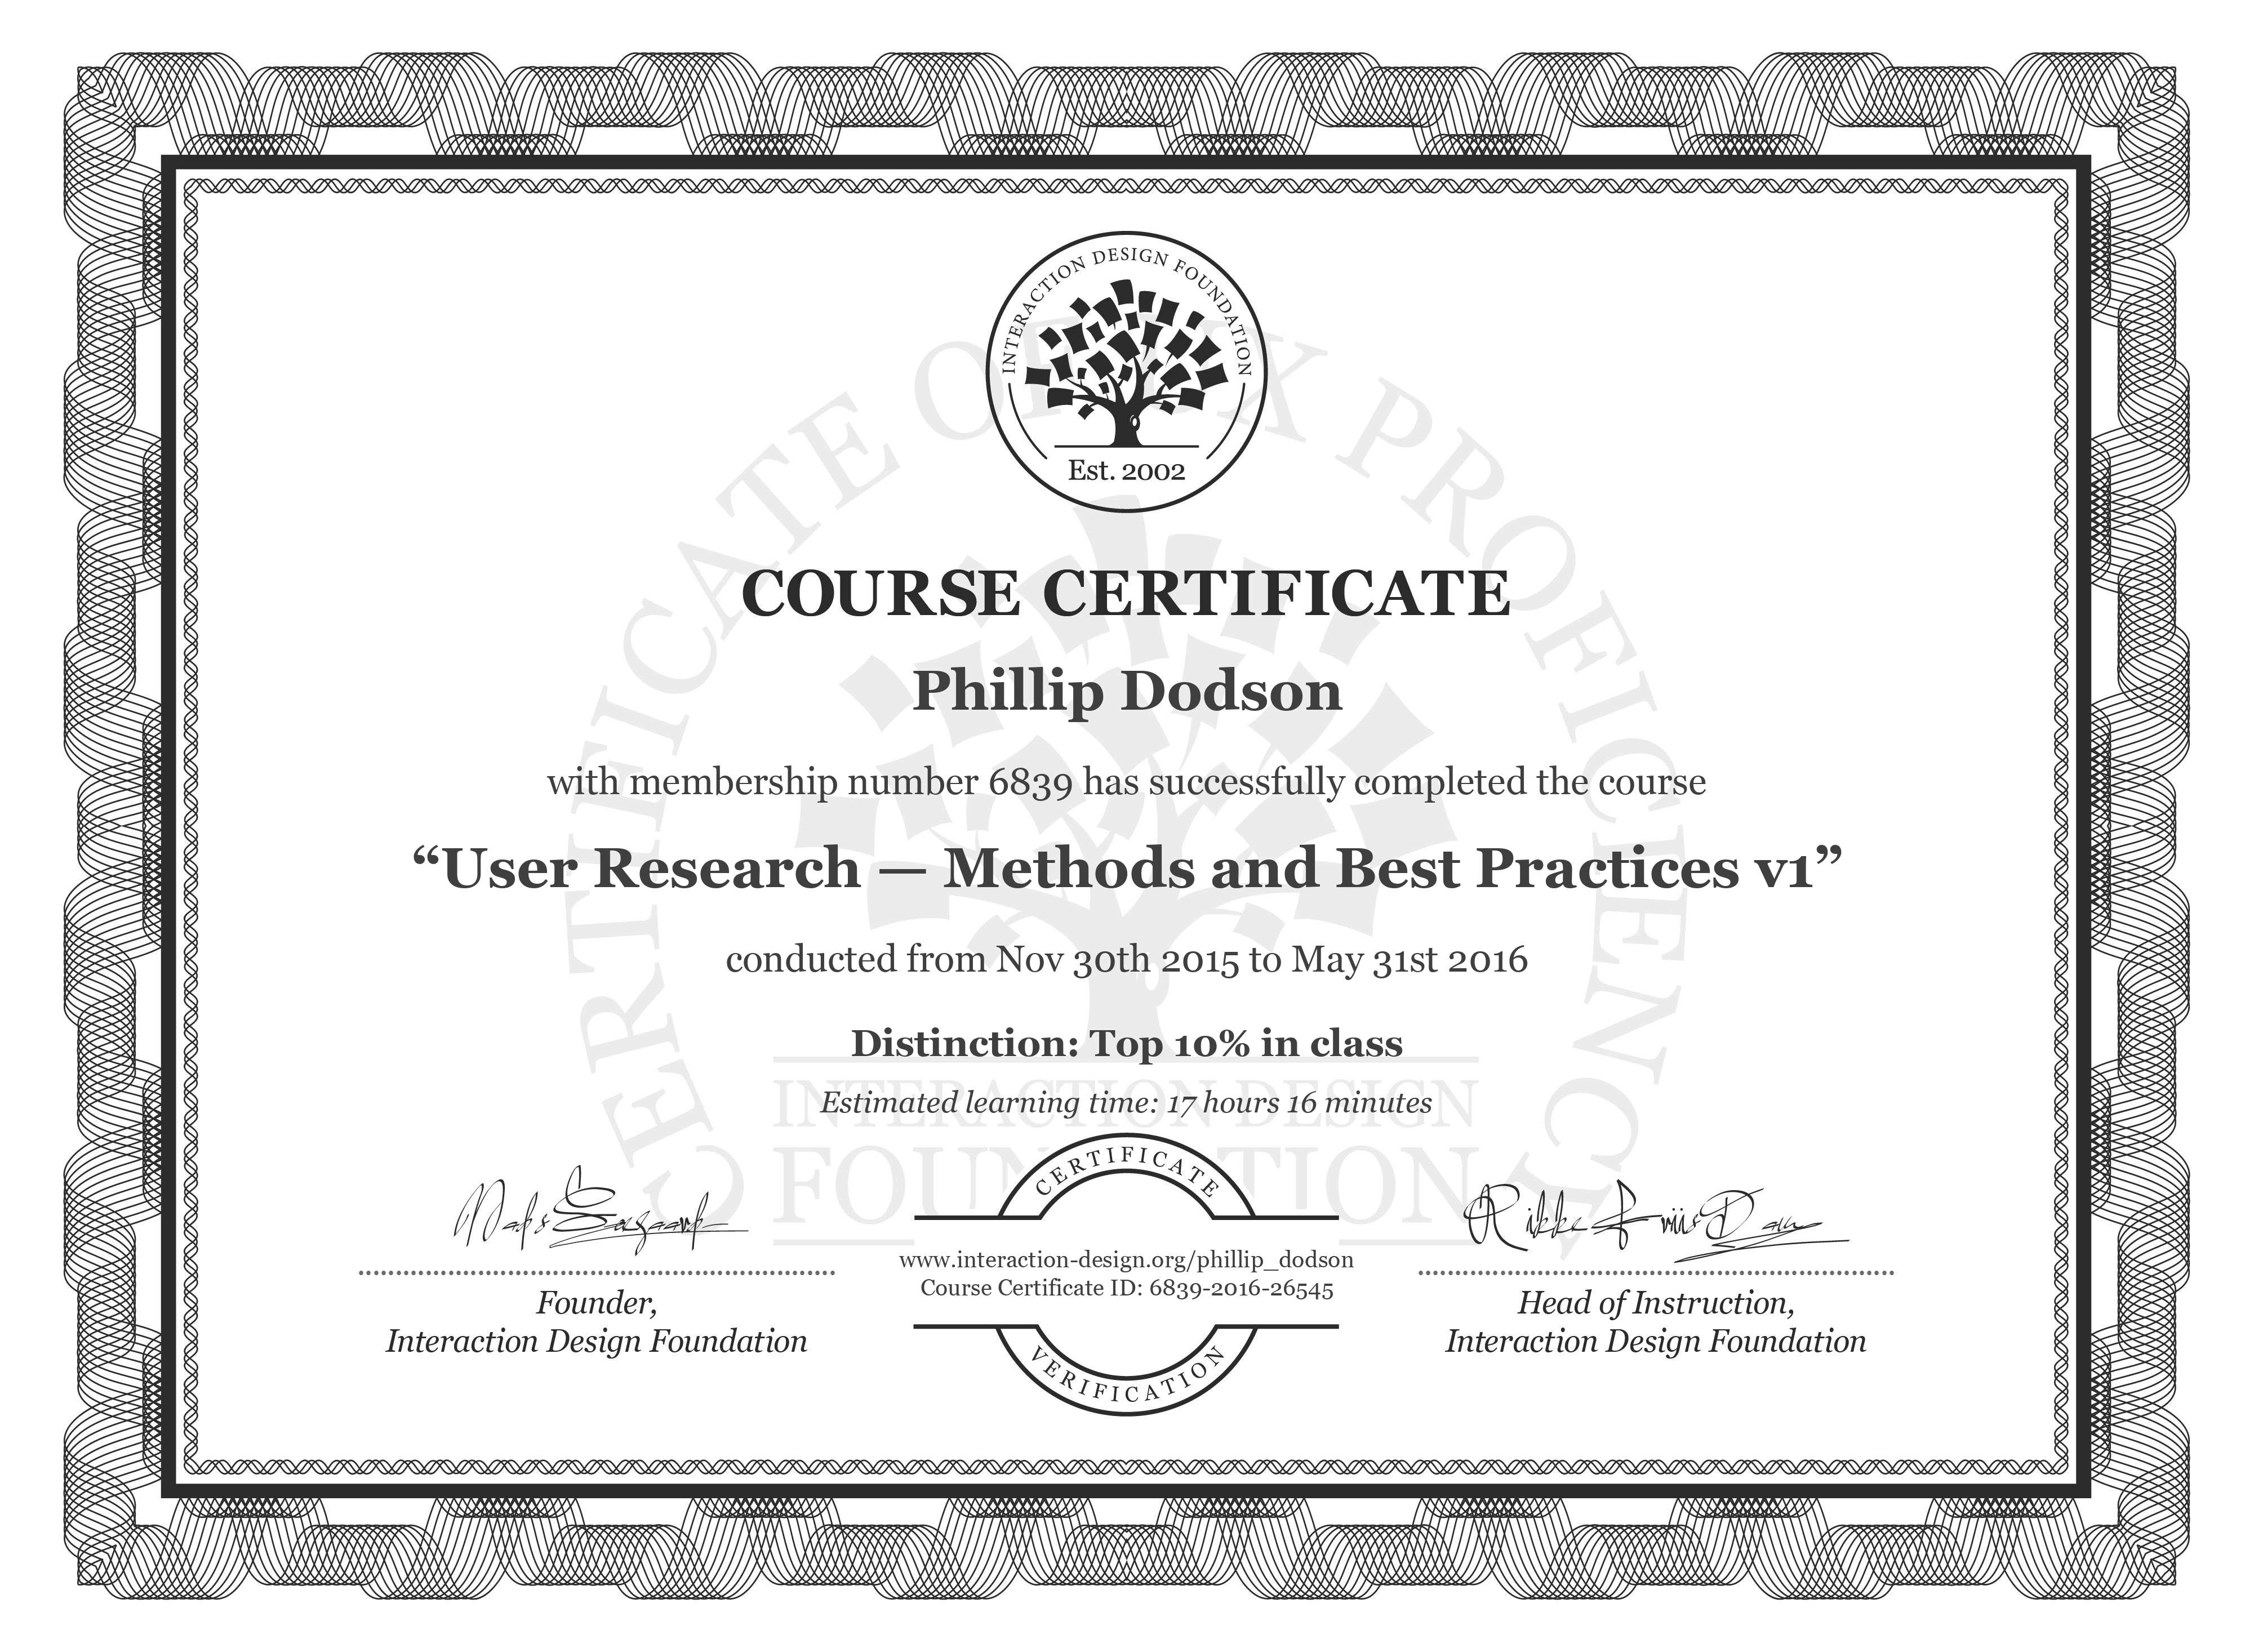 Phillip Dodson's Course Certificate: User Research — Methods and Best Practices